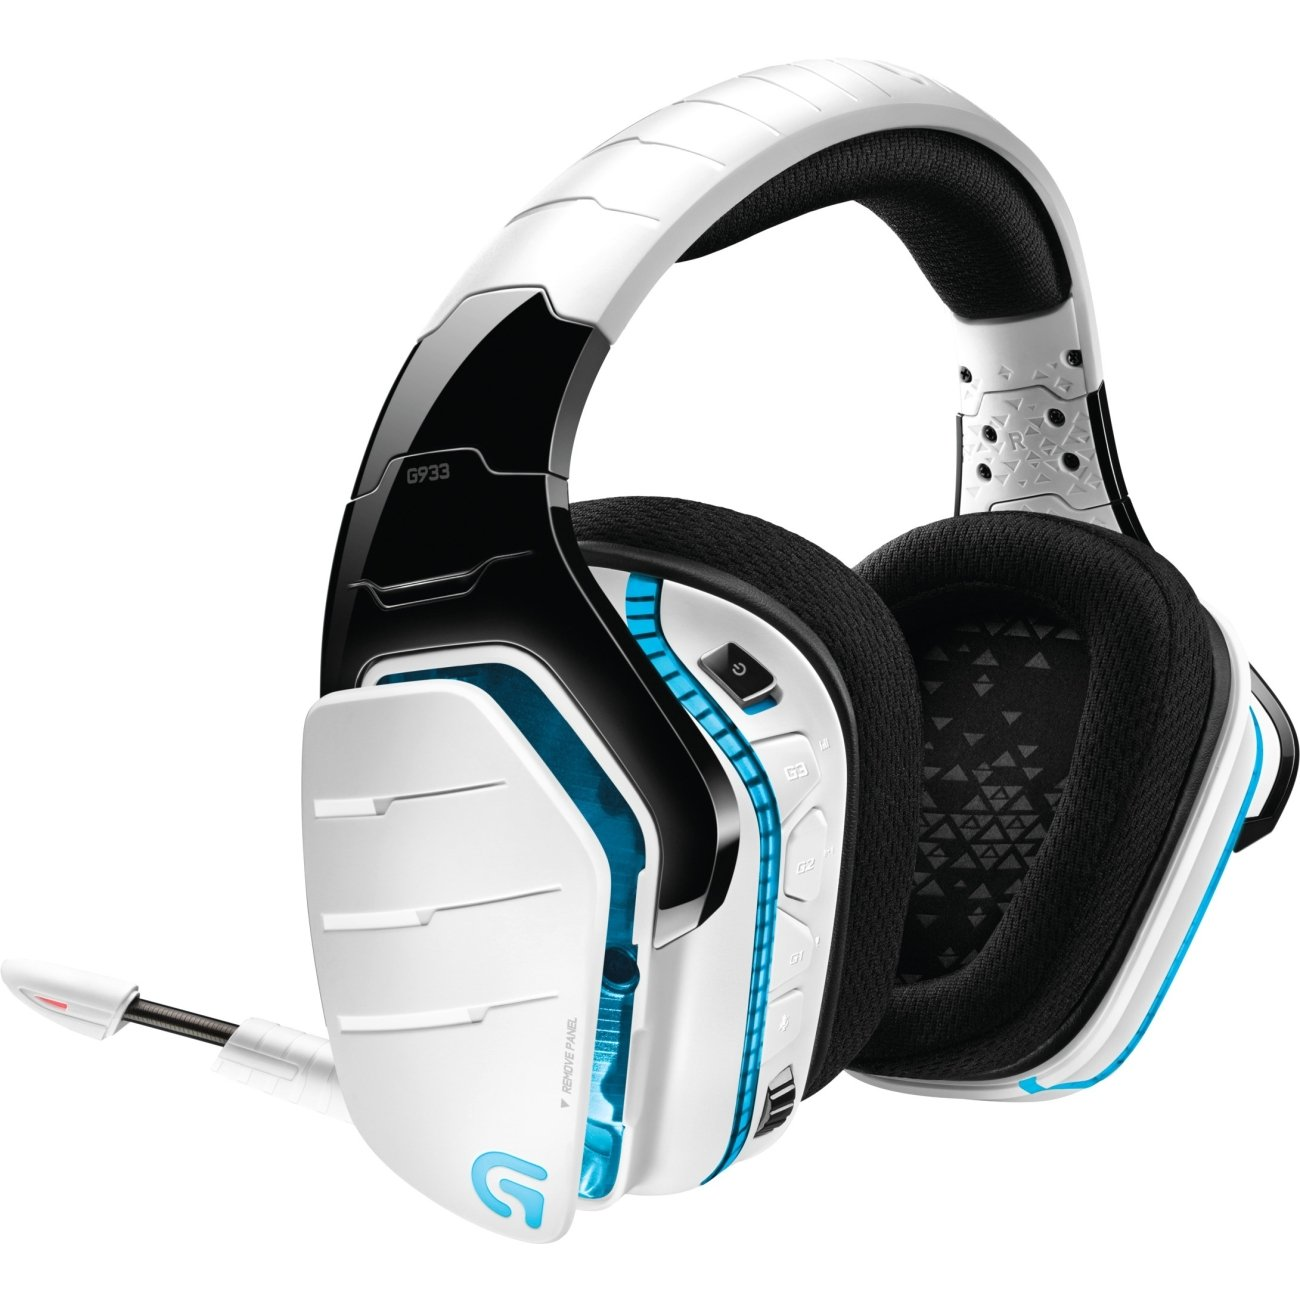 로지텍 G933 무선 헤드폰, 아르테미스 스펙트럼 Logitech G933 Artemis Spectrum, Wireless RGB 71 Dolby and DTS Headphone Surround Sound Gaming Headset, White